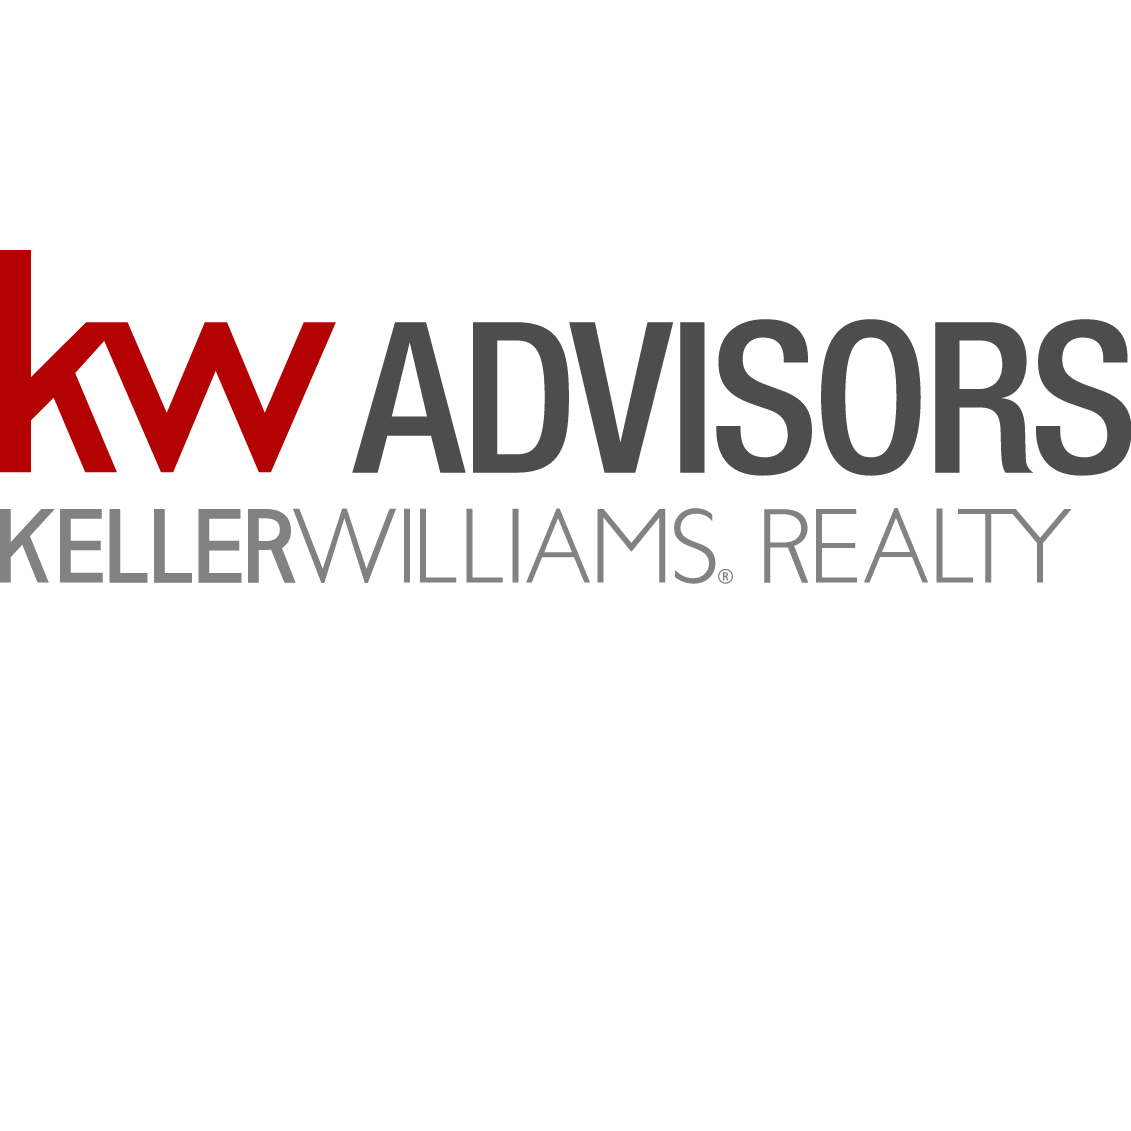 kw advisors keller williams png logo #5147